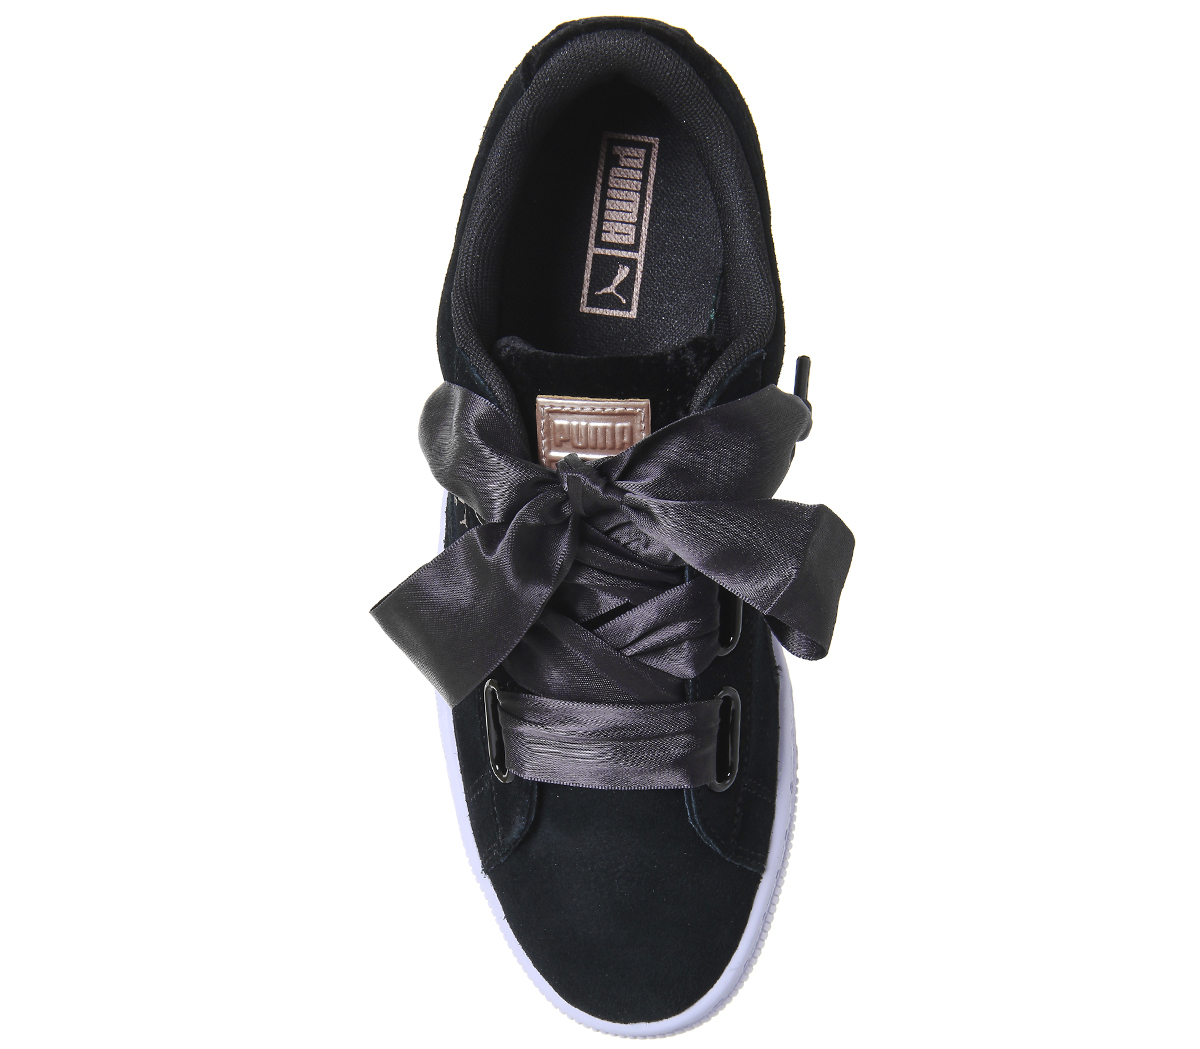 22f0886e93d Sentinel Womens Puma Suede Heart Trainers BLACK GOLD VR Trainers Shoes